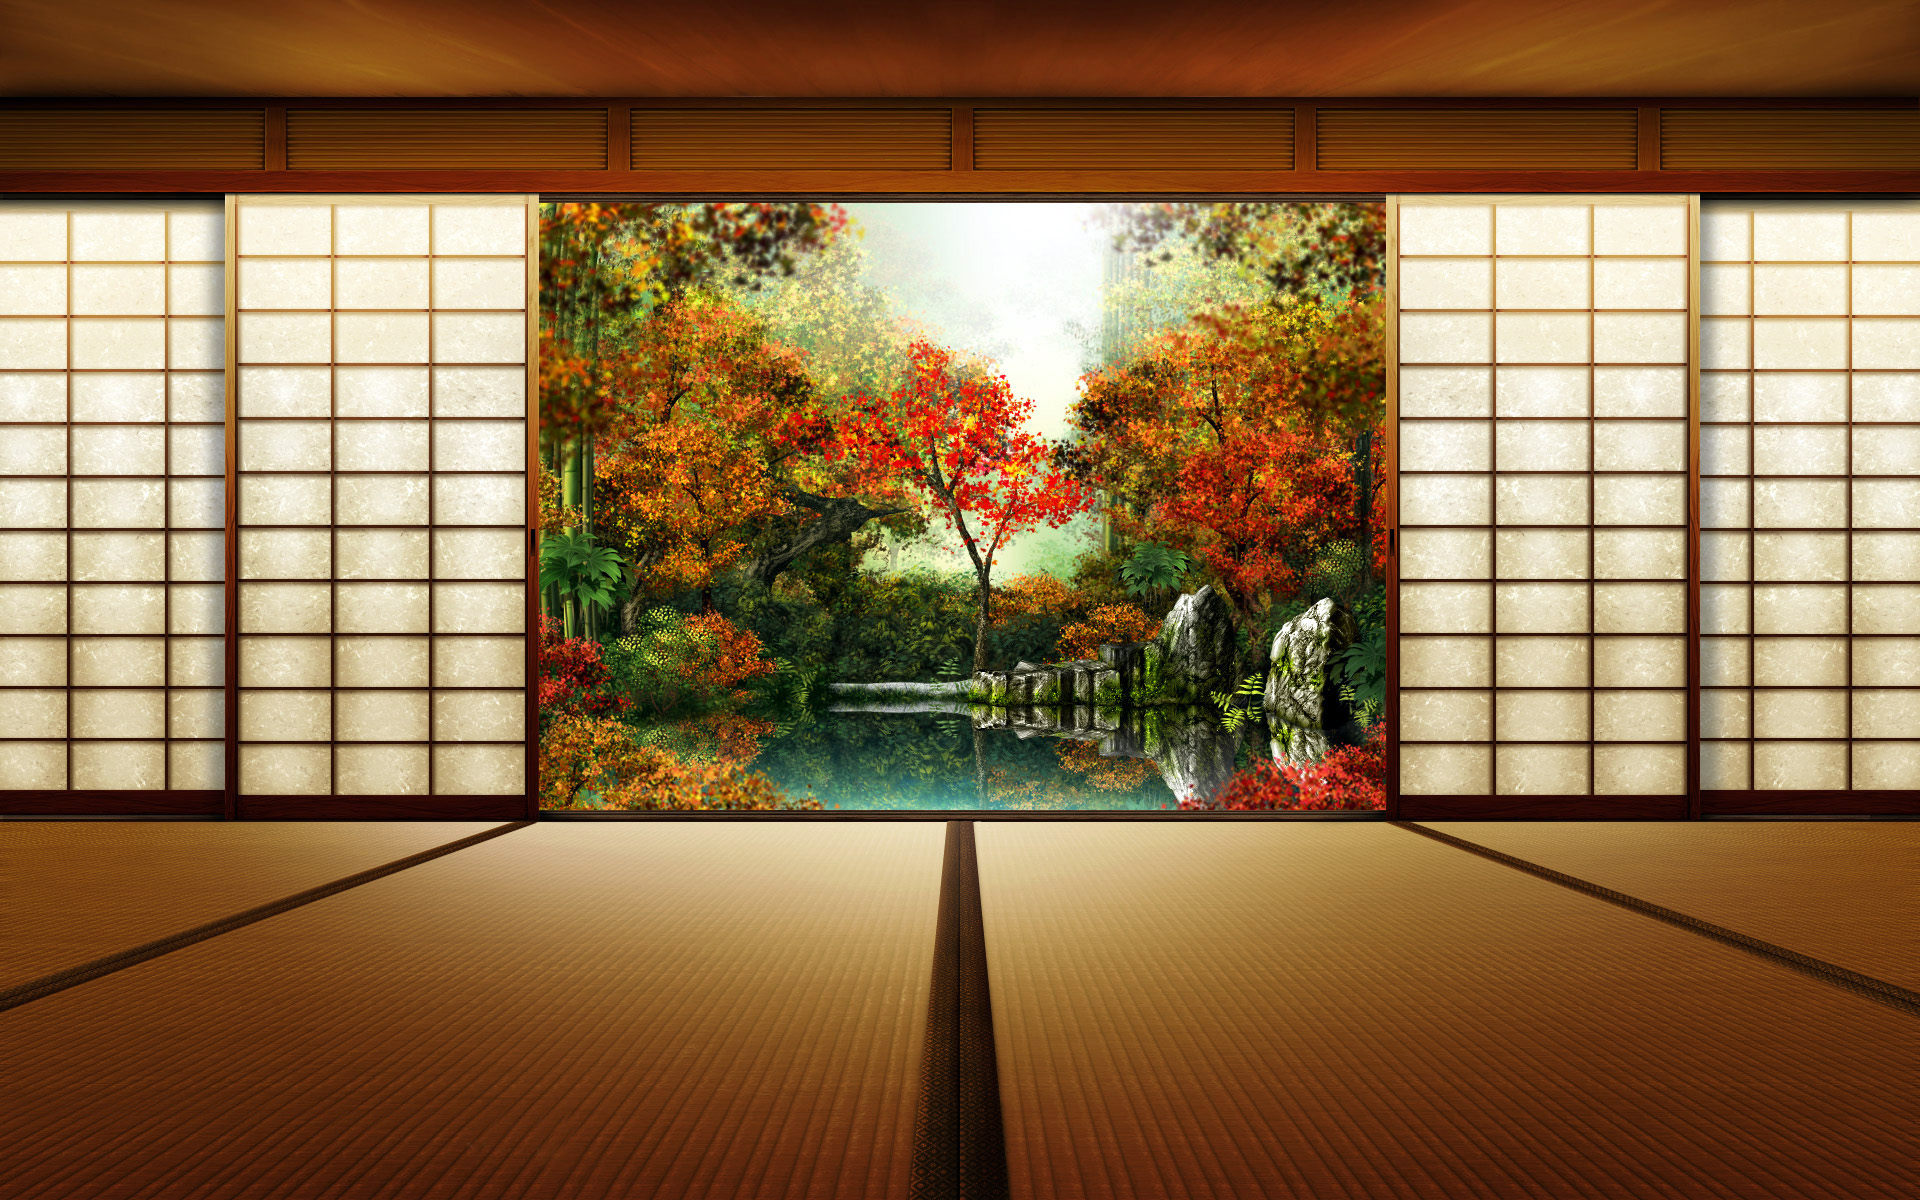 1080p hd japan wallpapers for free download the for Best house wallpaper